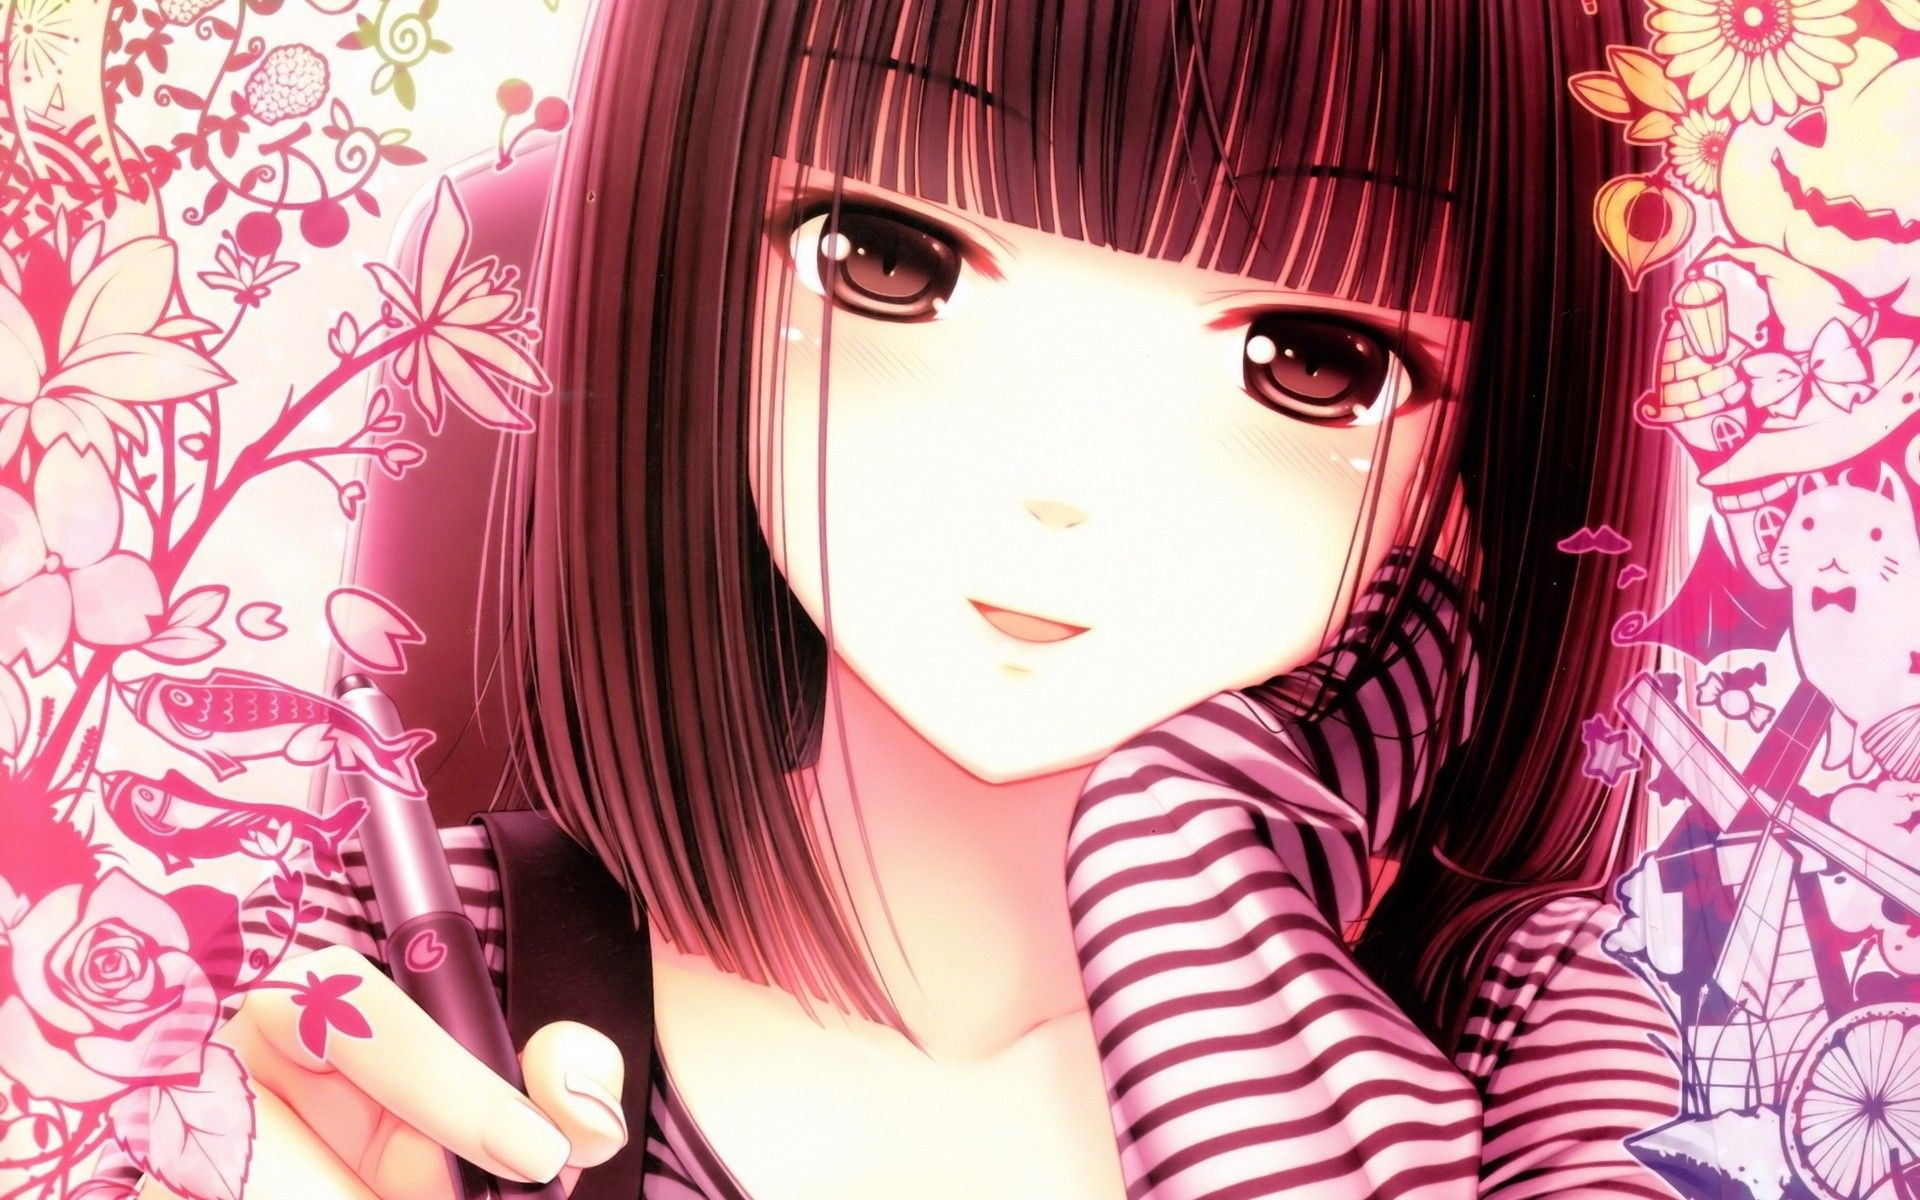 Anime Wallpaper. Cute anime girl with brown hair and pink background.